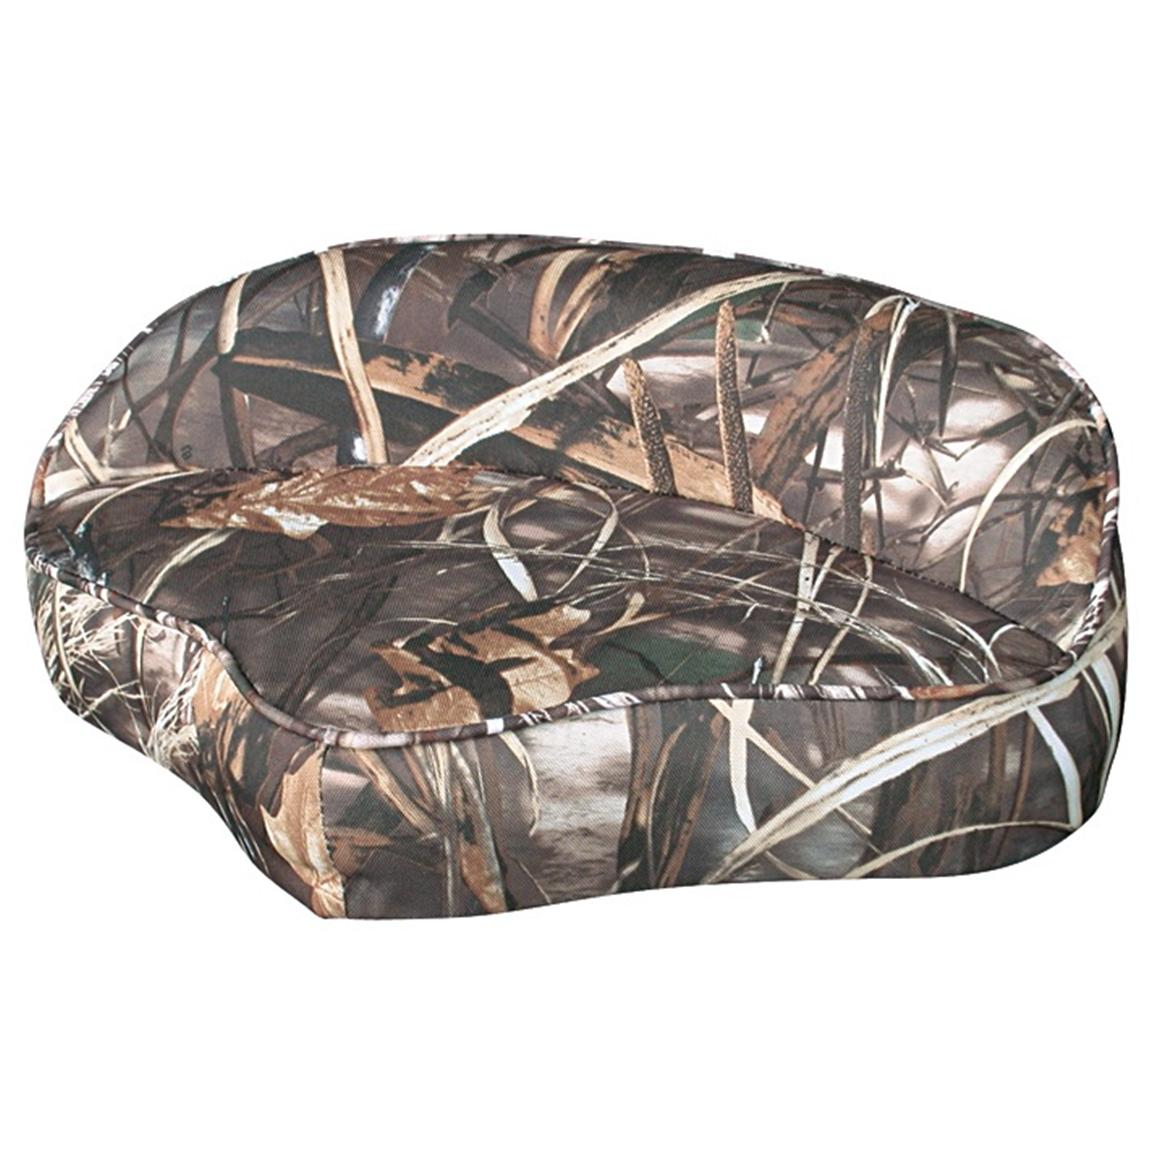 Wise® Casting Camo Boat Seat, Mossy Oak Shadow Grass